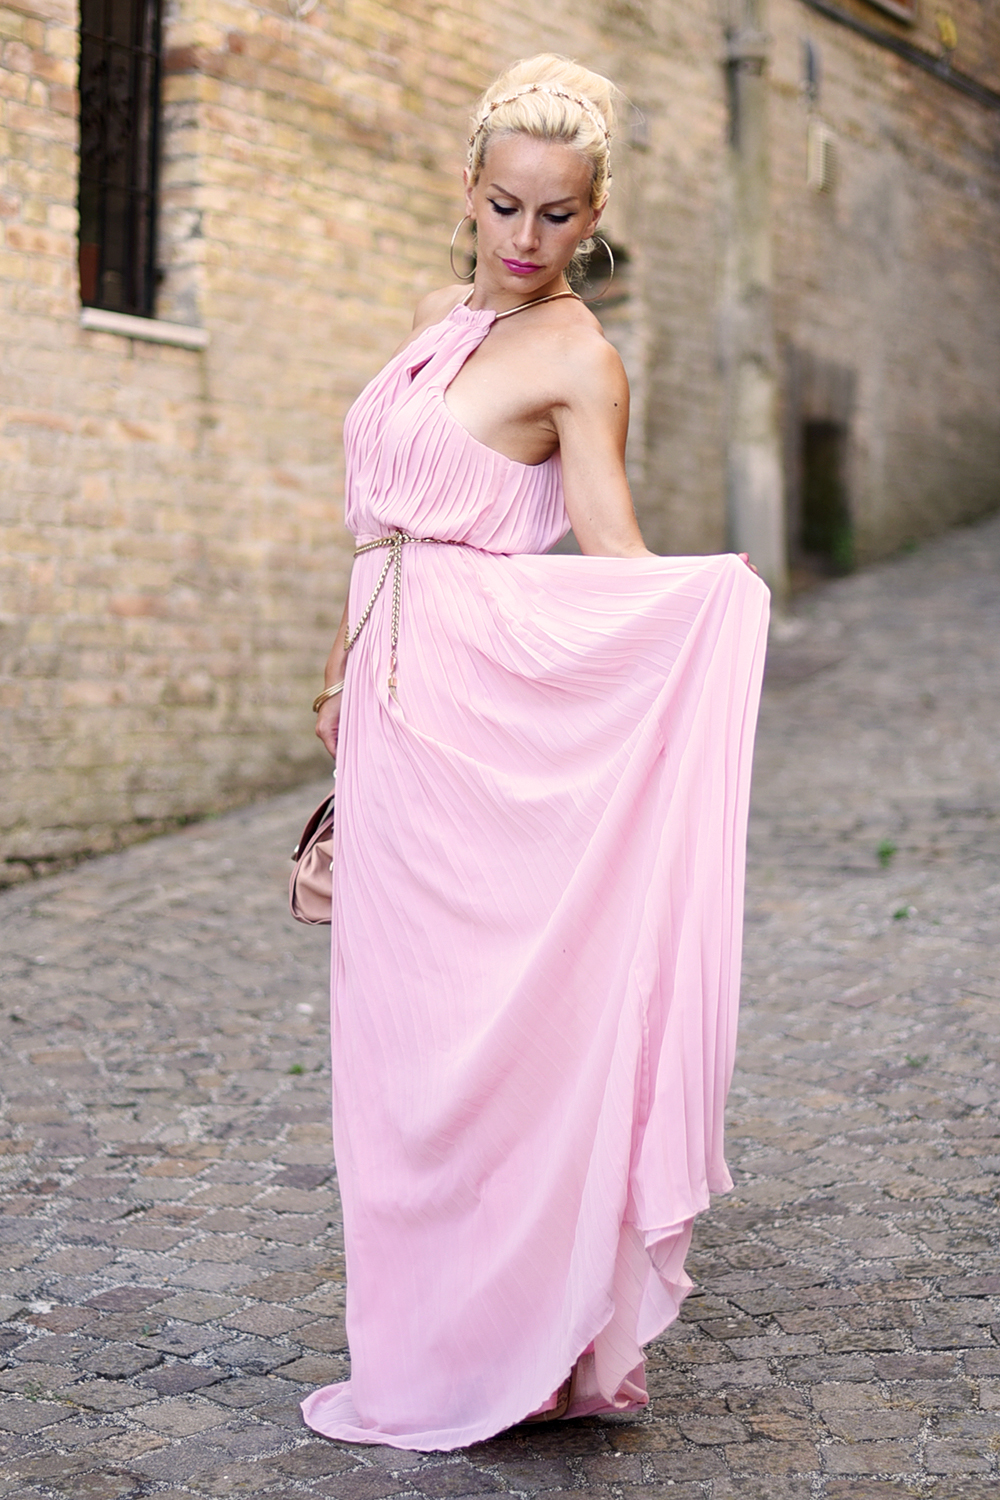 long dress, maxi dress, Shein Italia, opinioni recensioni Sheinside, Shein affidabile, MA Stone jewels, Swallow ring - outfit summer 2015 fashion blogger It-Girl by Eleonora Petrella